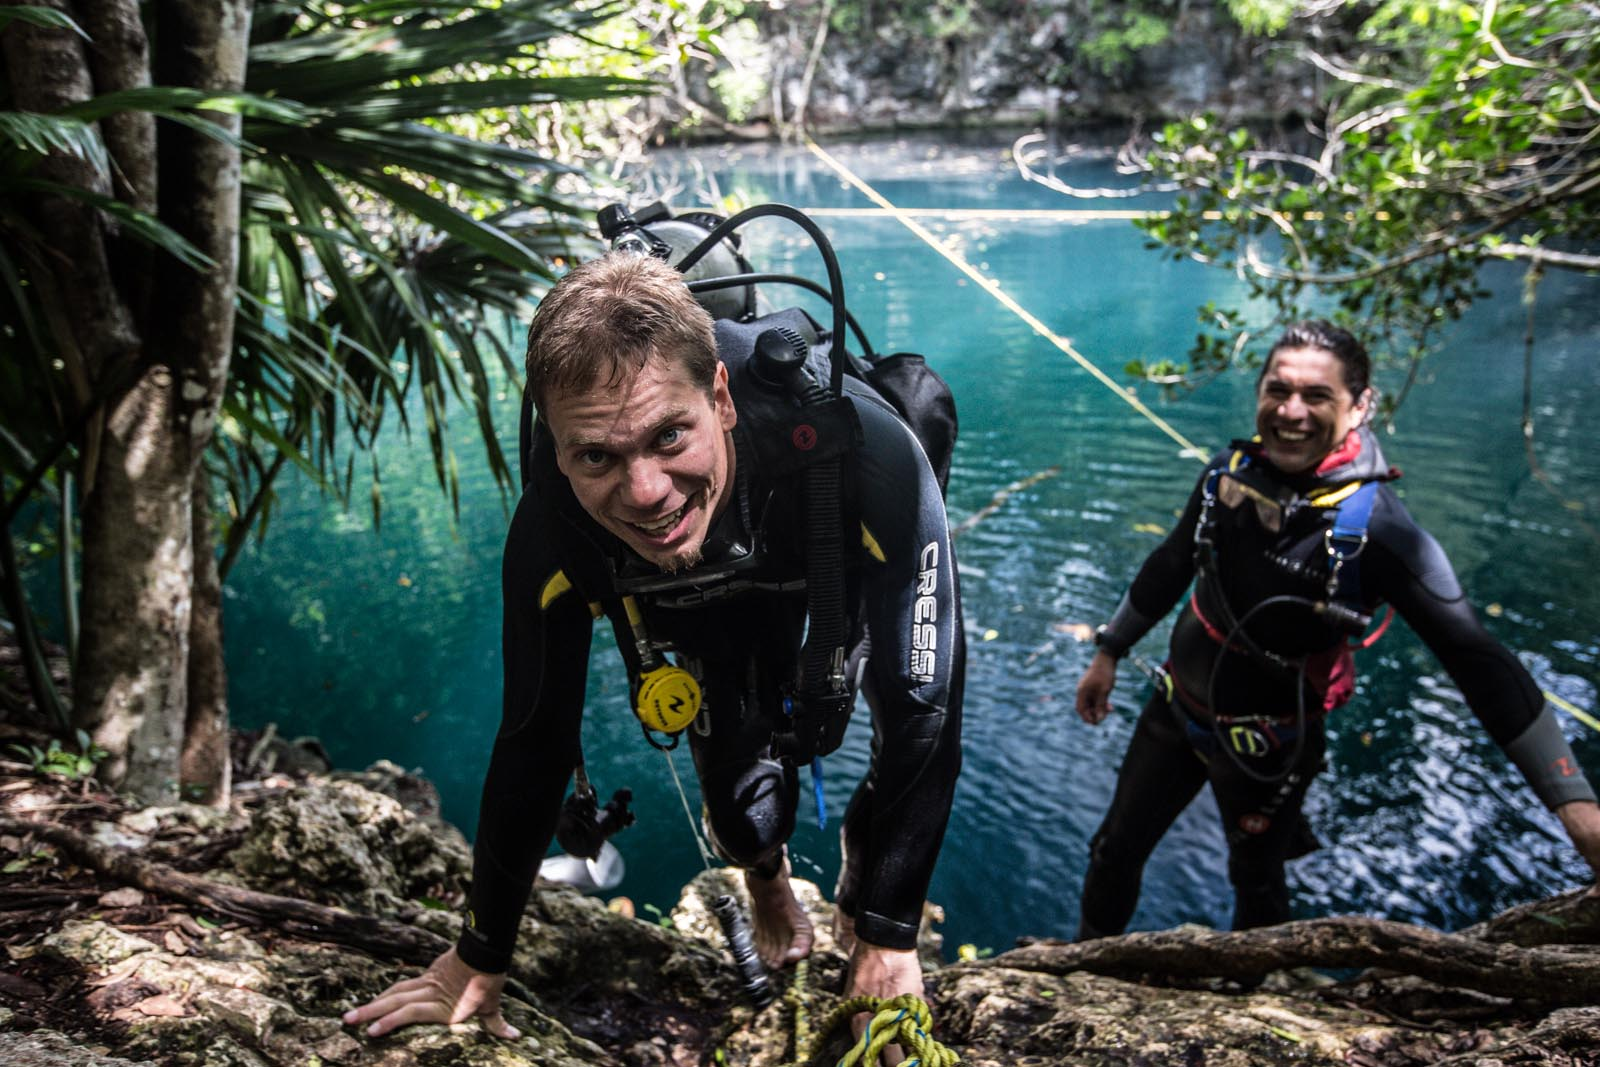 You can tell by the giant smiles on both Andrew's and Paolo's faces, that they didn't enjoy Angelita, The Little Angel, cenote at all.